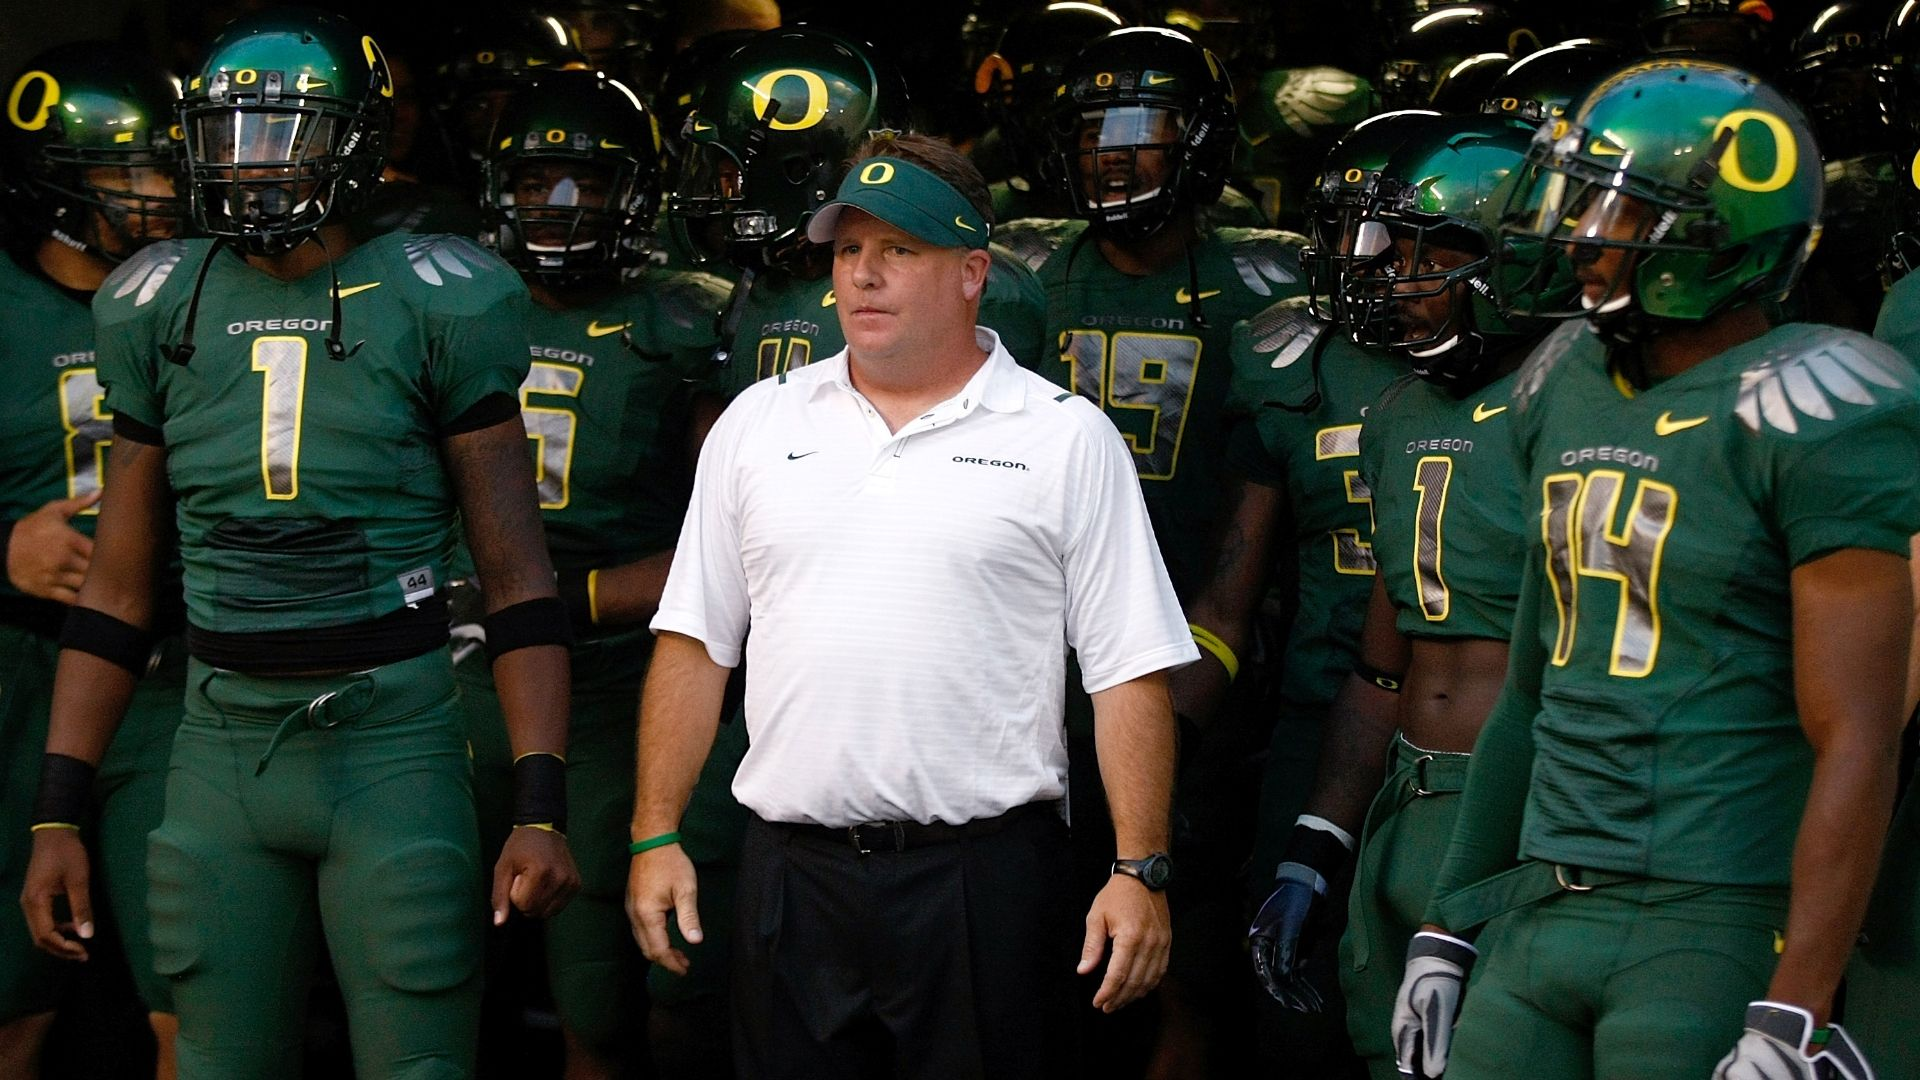 UCLA meets with Chip Kelly, who has also spoken to Florida | abc7.com